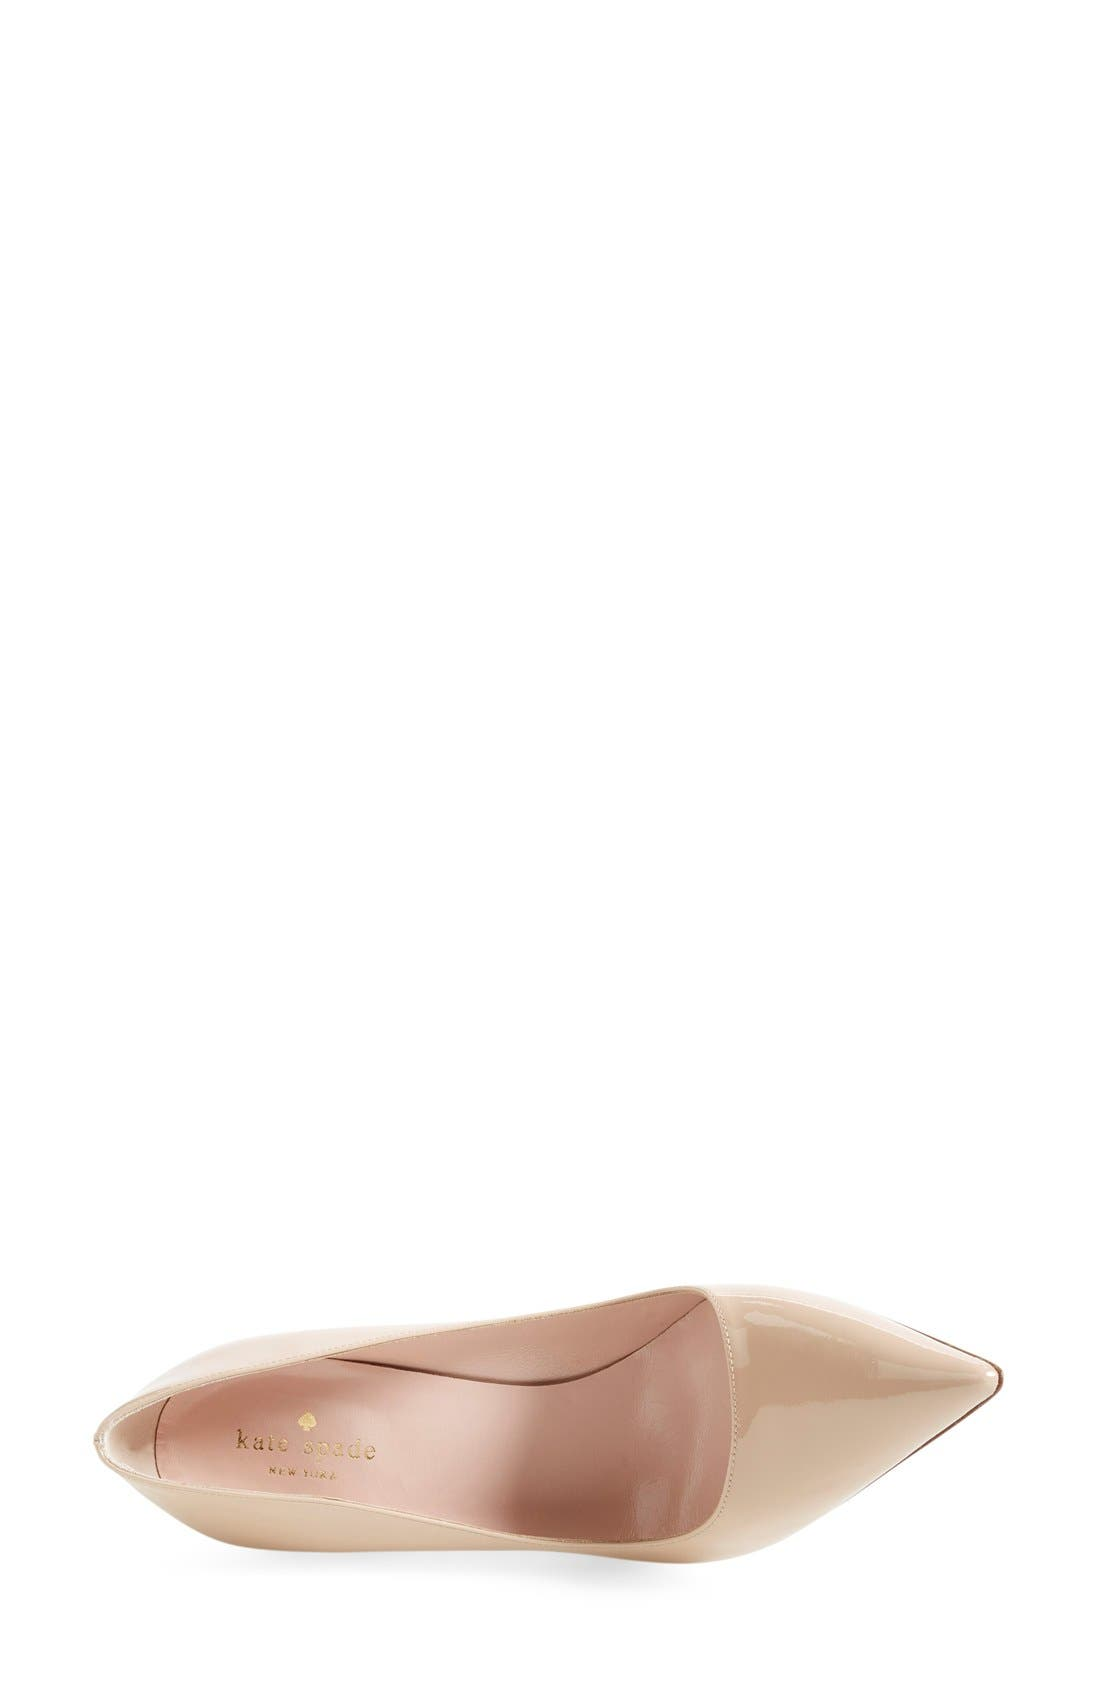 Alternate Image 3  - kate spade new york 'licorice too' pump (Women)